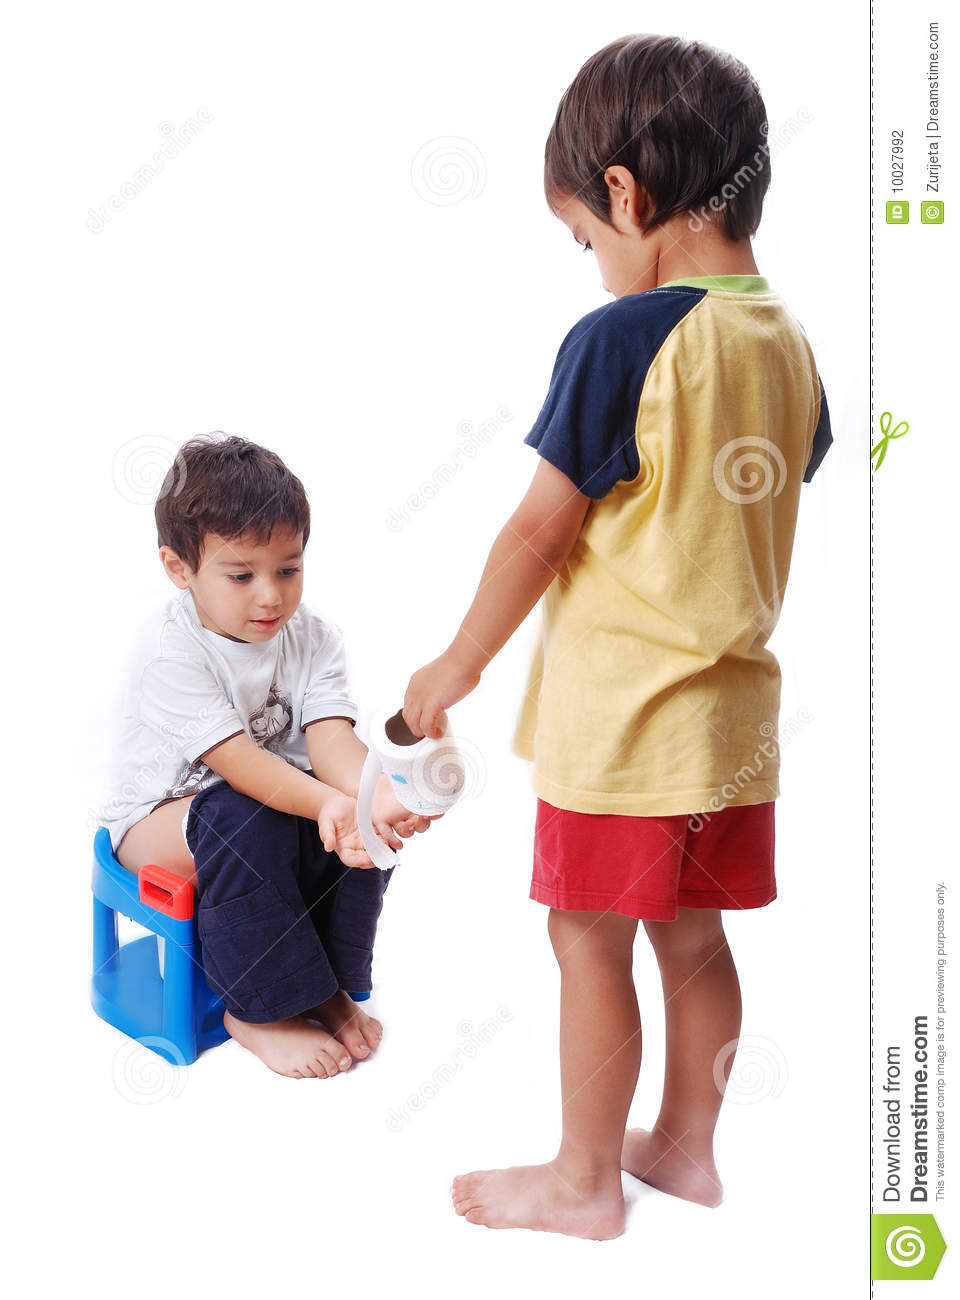 Kids being nice to each other in school